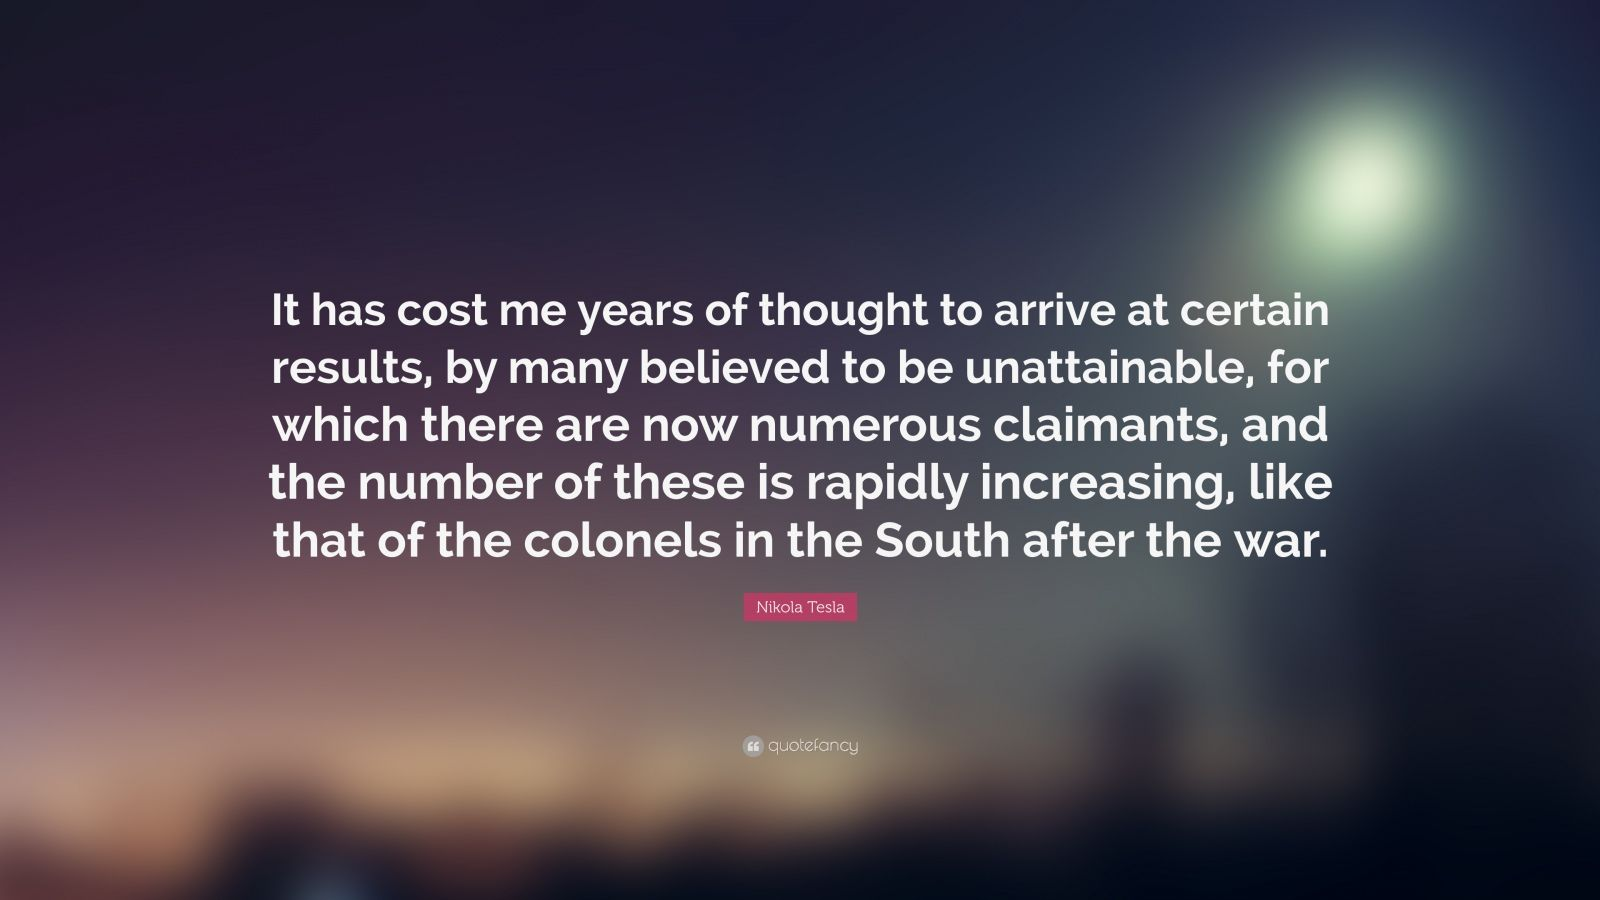 """Nikola Tesla Quote: """"It has cost me years of thought to arrive at certain results, by many believed to be unattainable, for which there are now numerous claimants, and the number of these is rapidly increasing, like that of the colonels in the South after the war."""""""